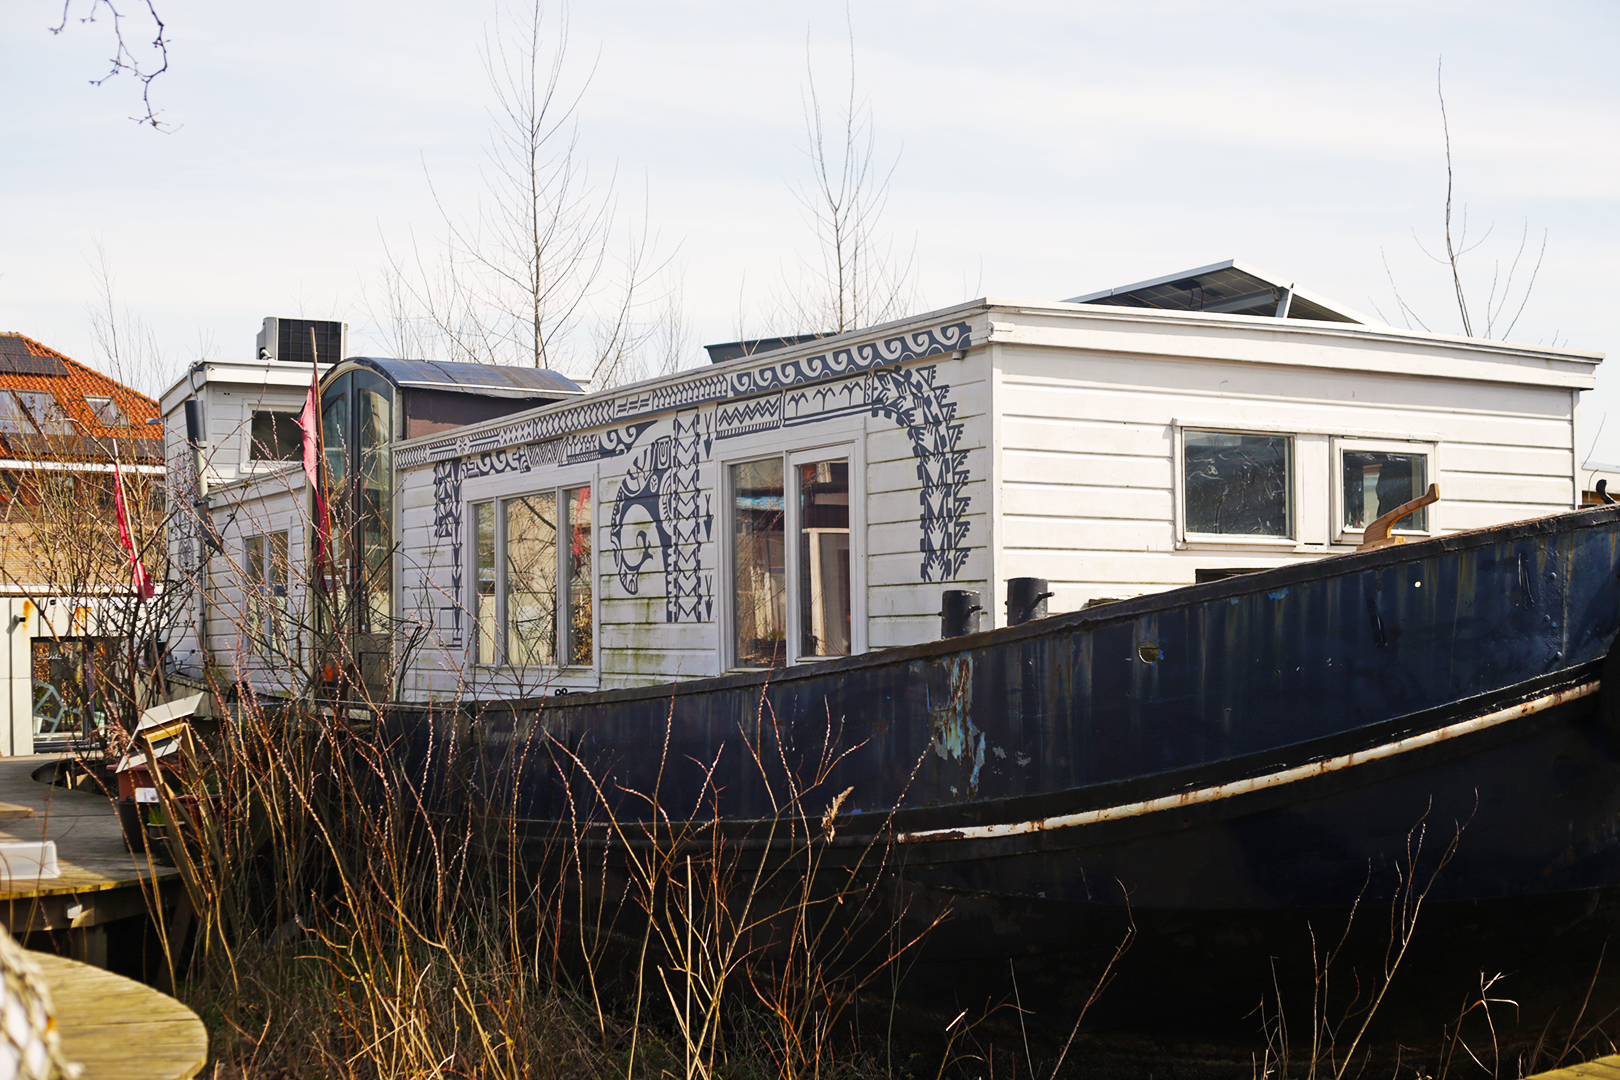 A remodeled houseboat in De Cuevel uses sustainable technology and regenerative plants to clean the post-industrial soil